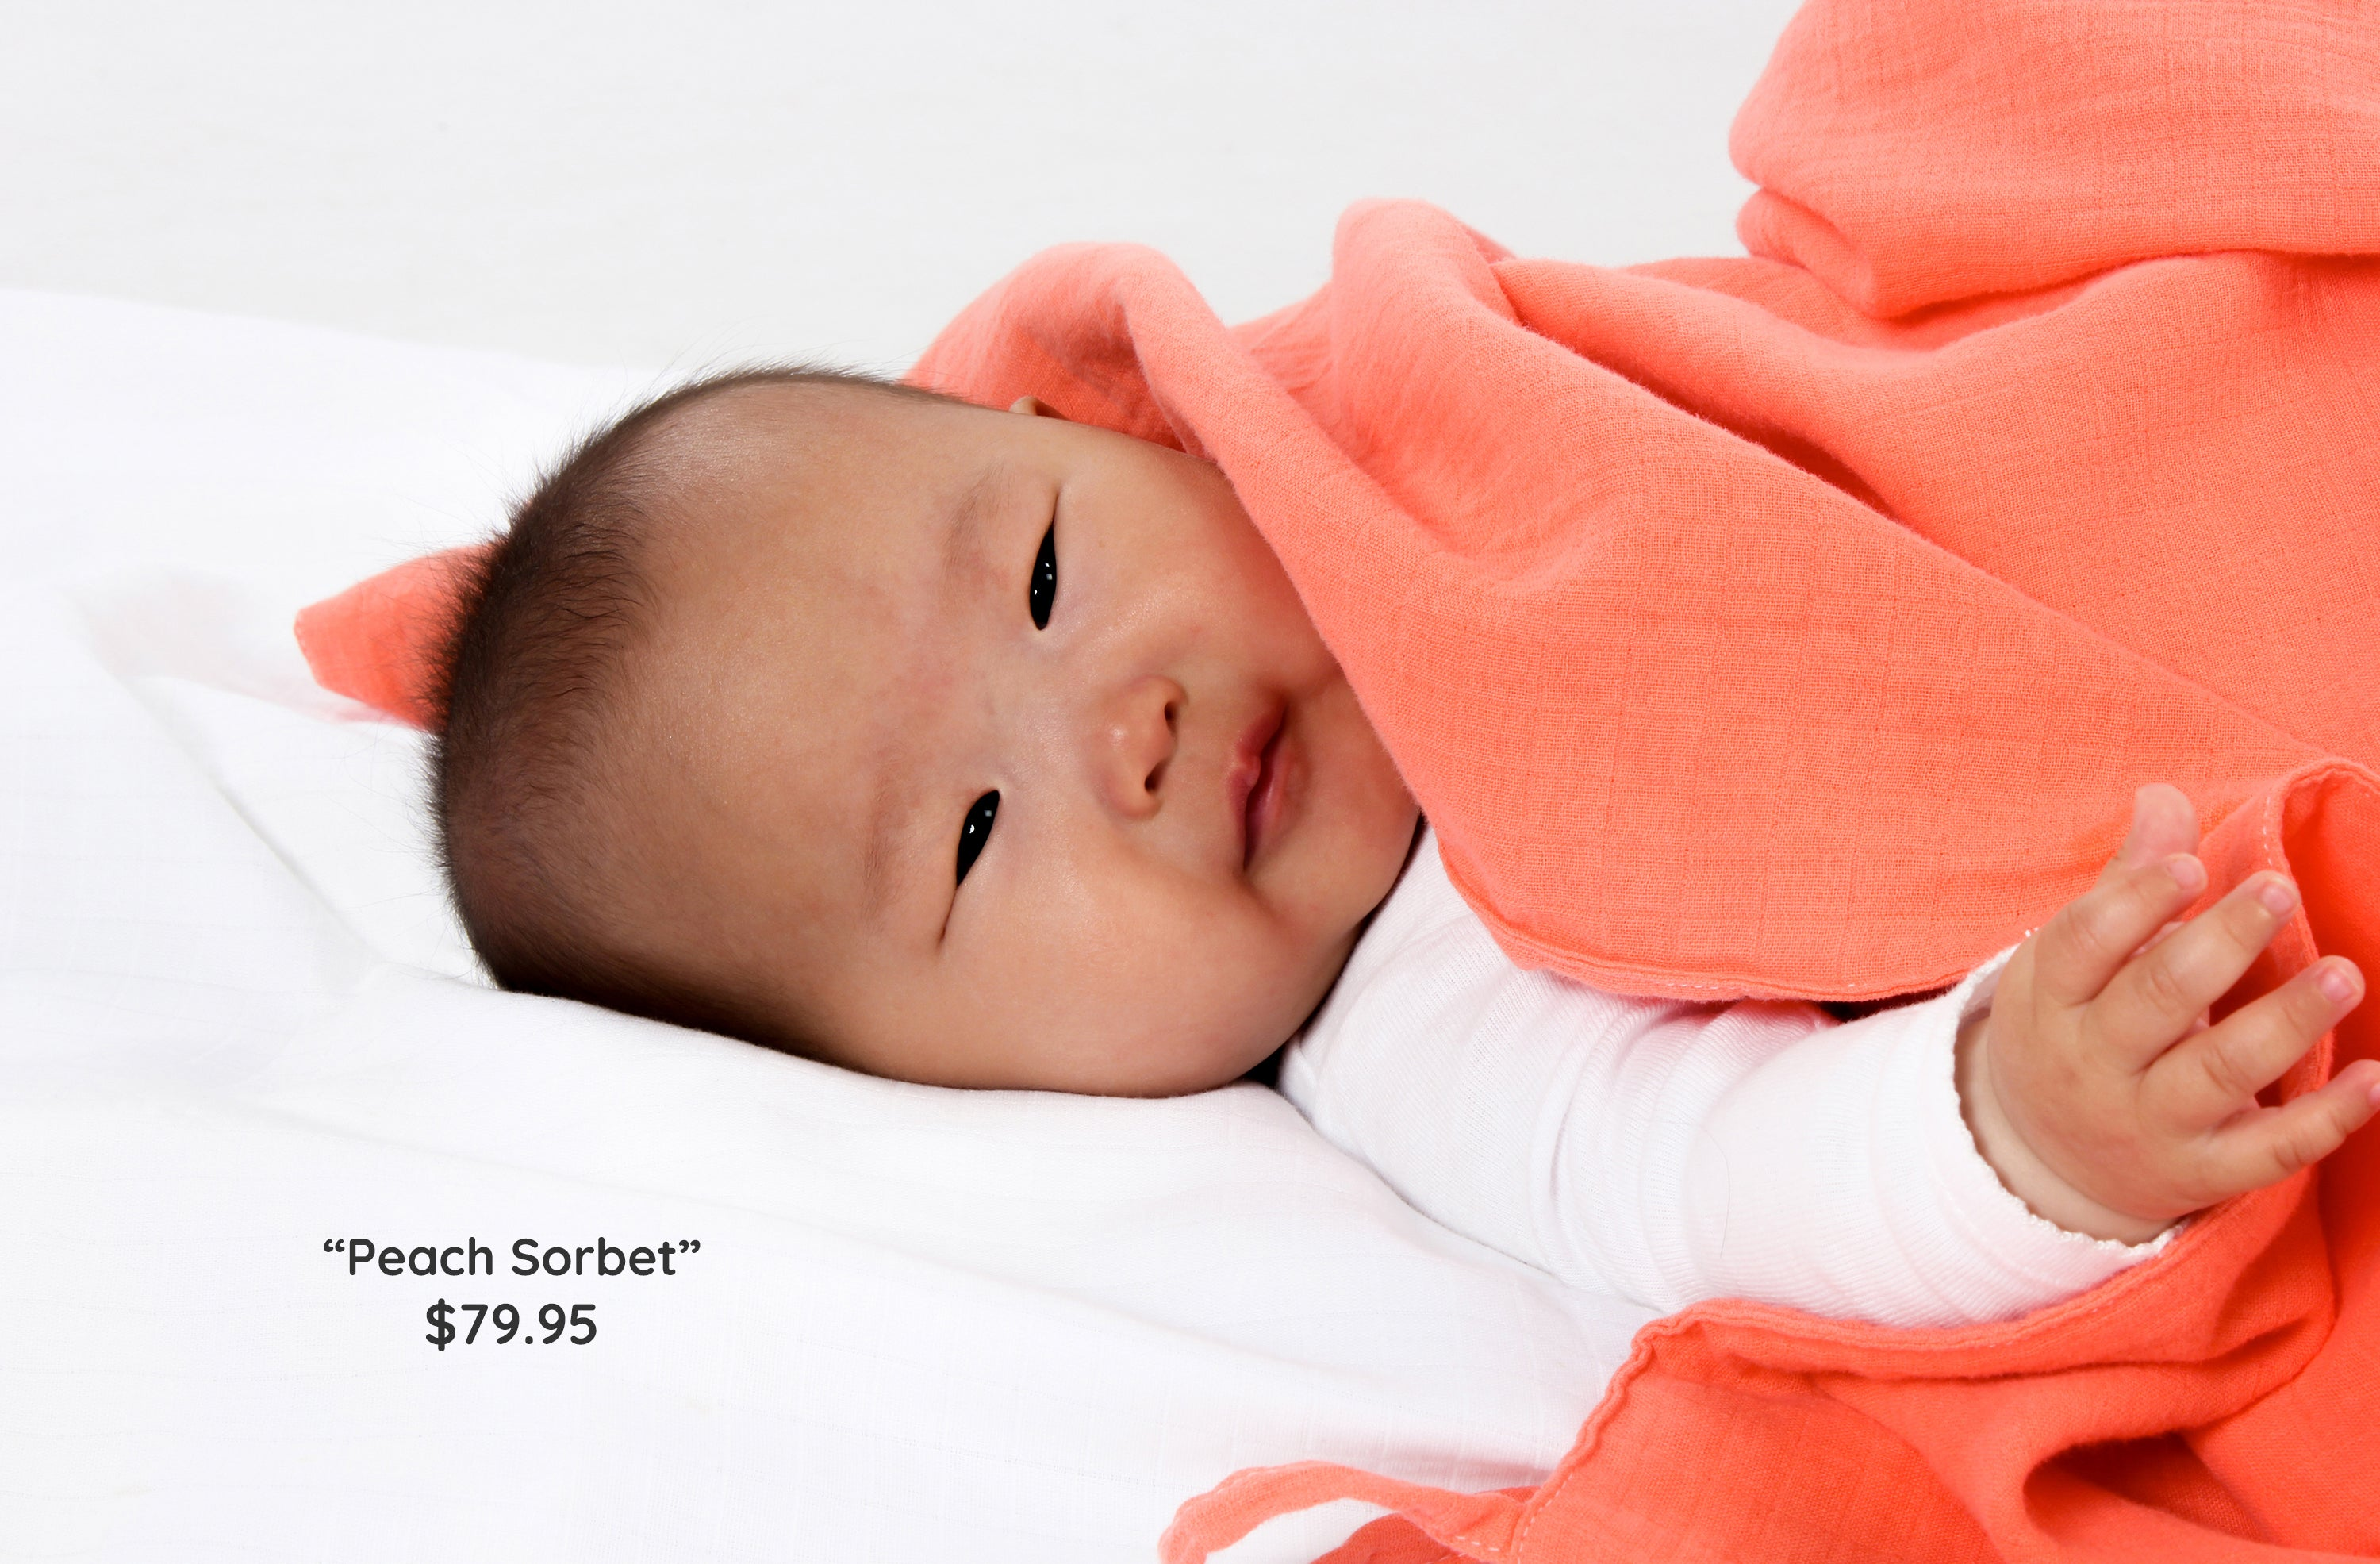 Baby lying on white musluv cover, covered in peach musluv